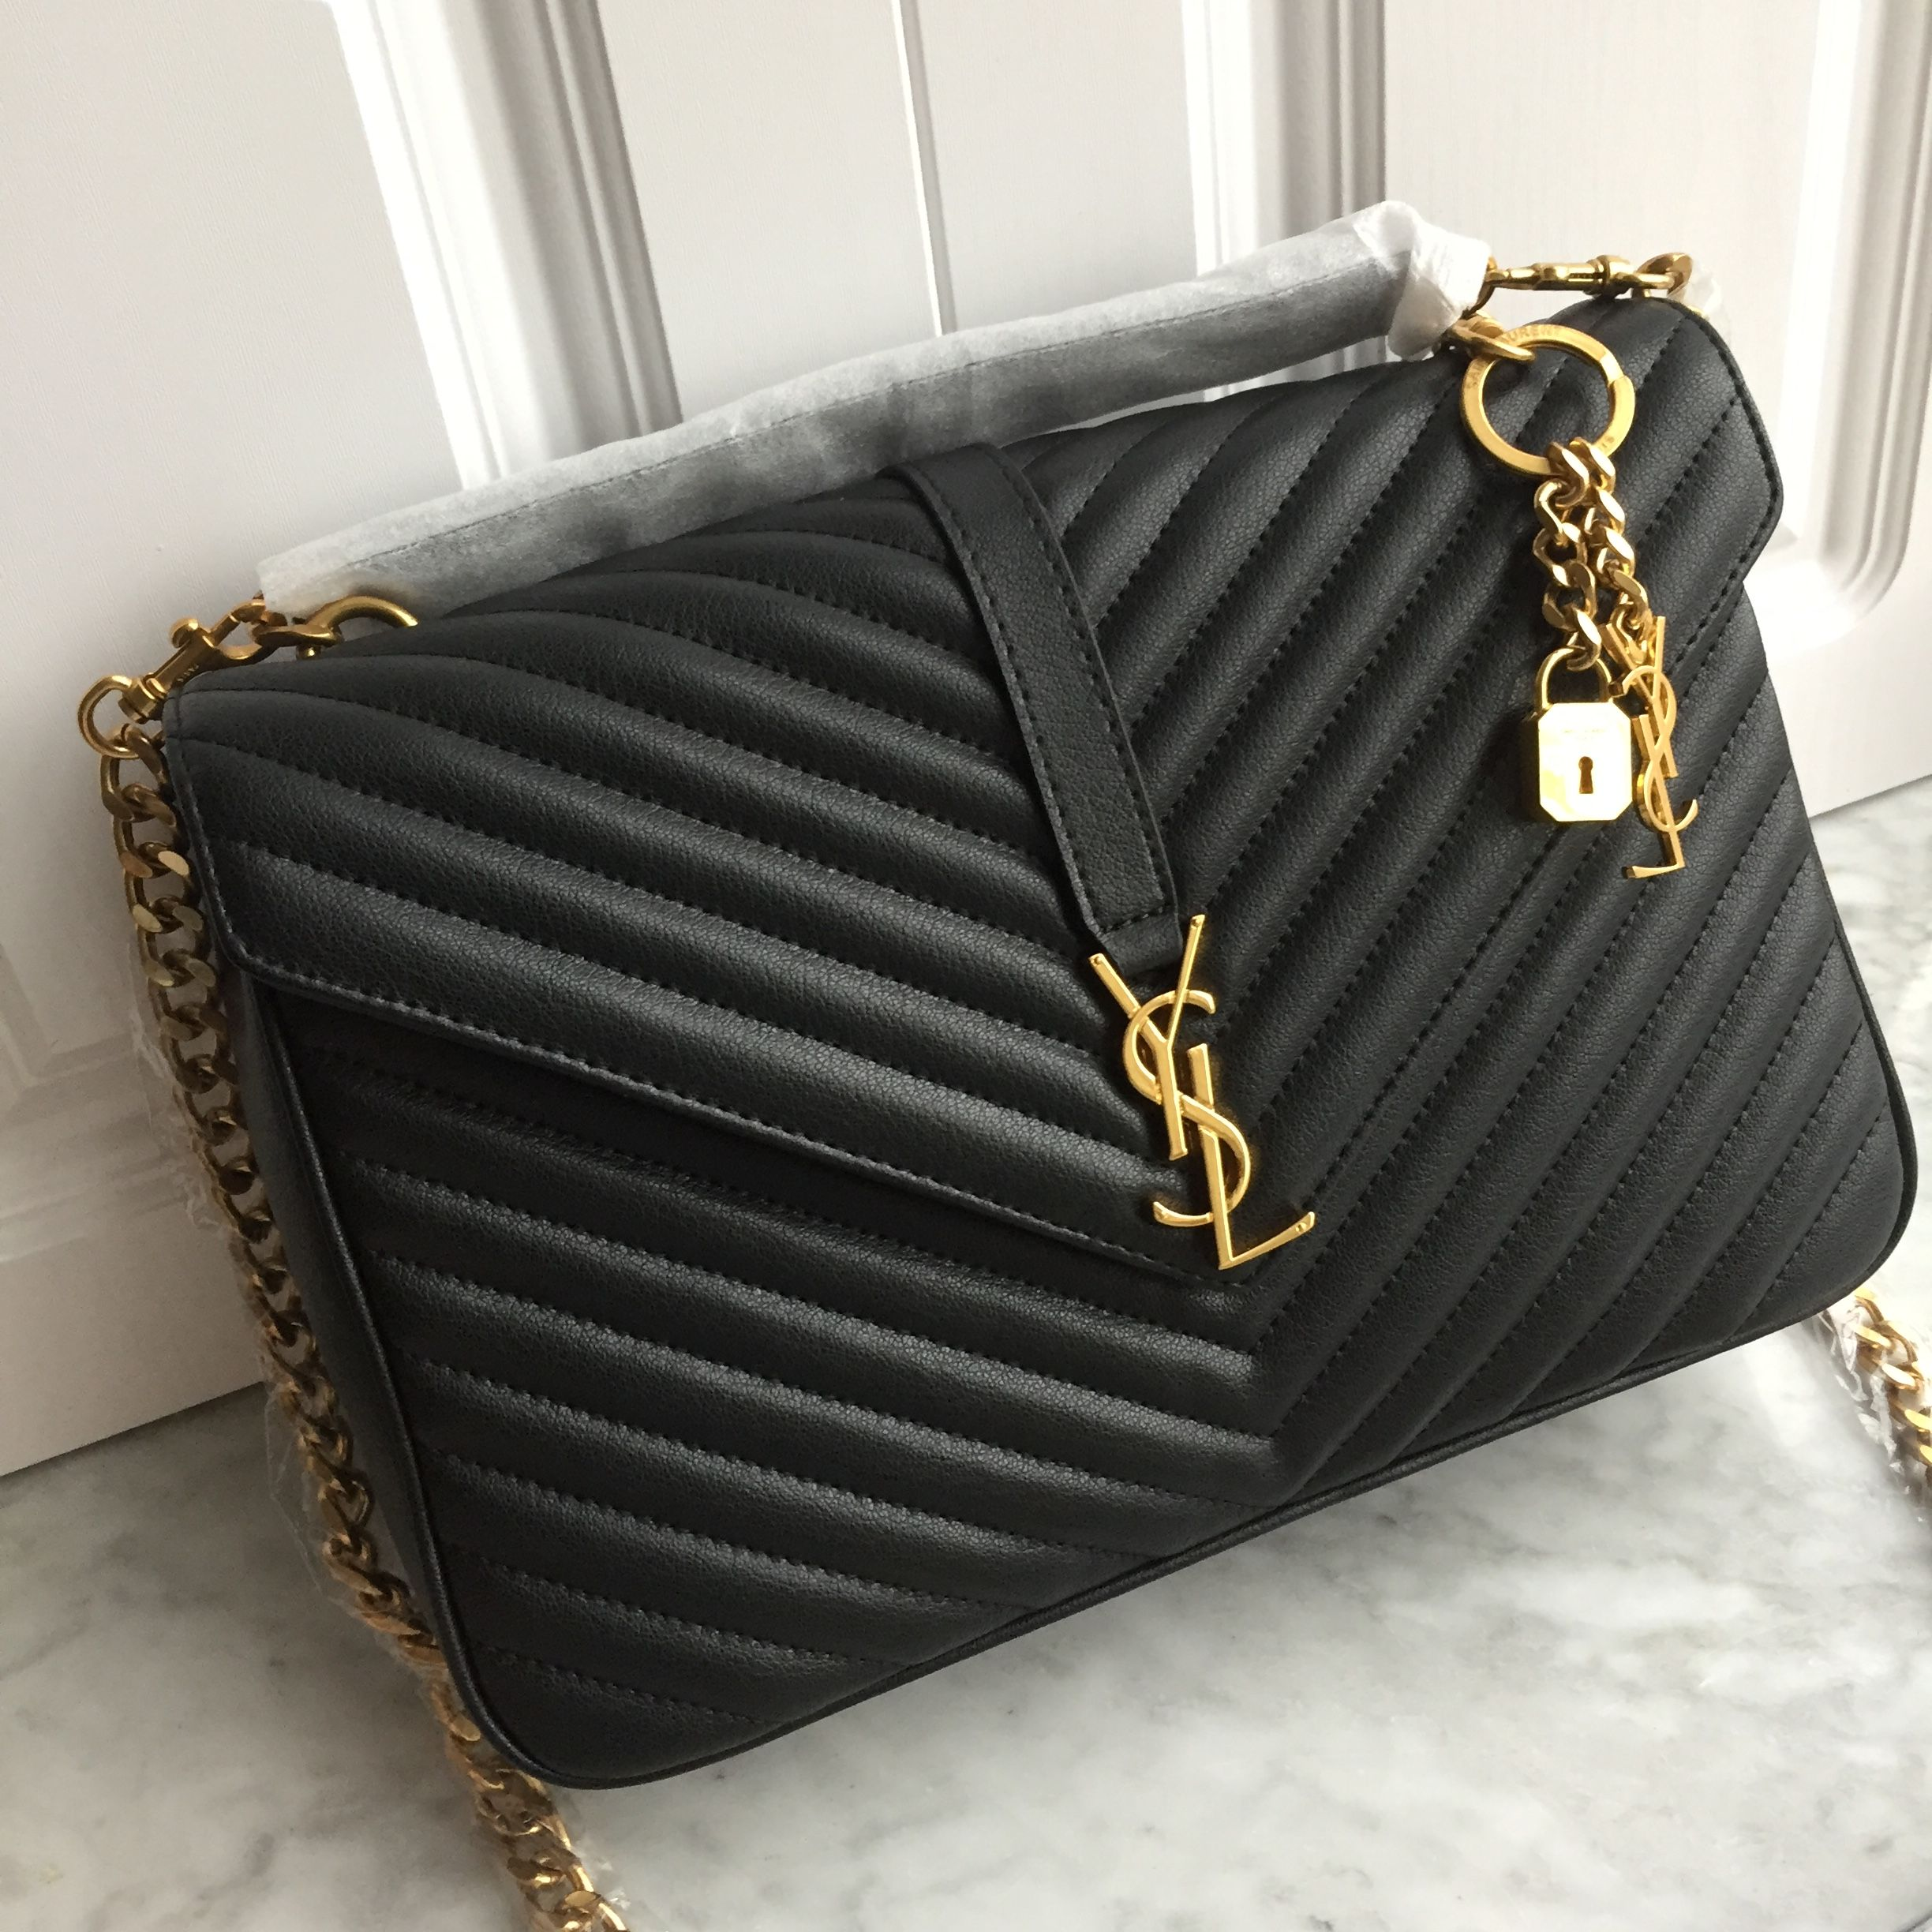 dea39ec9a76c Ysl Saint Laurent slp college chain flap bag black large size ...